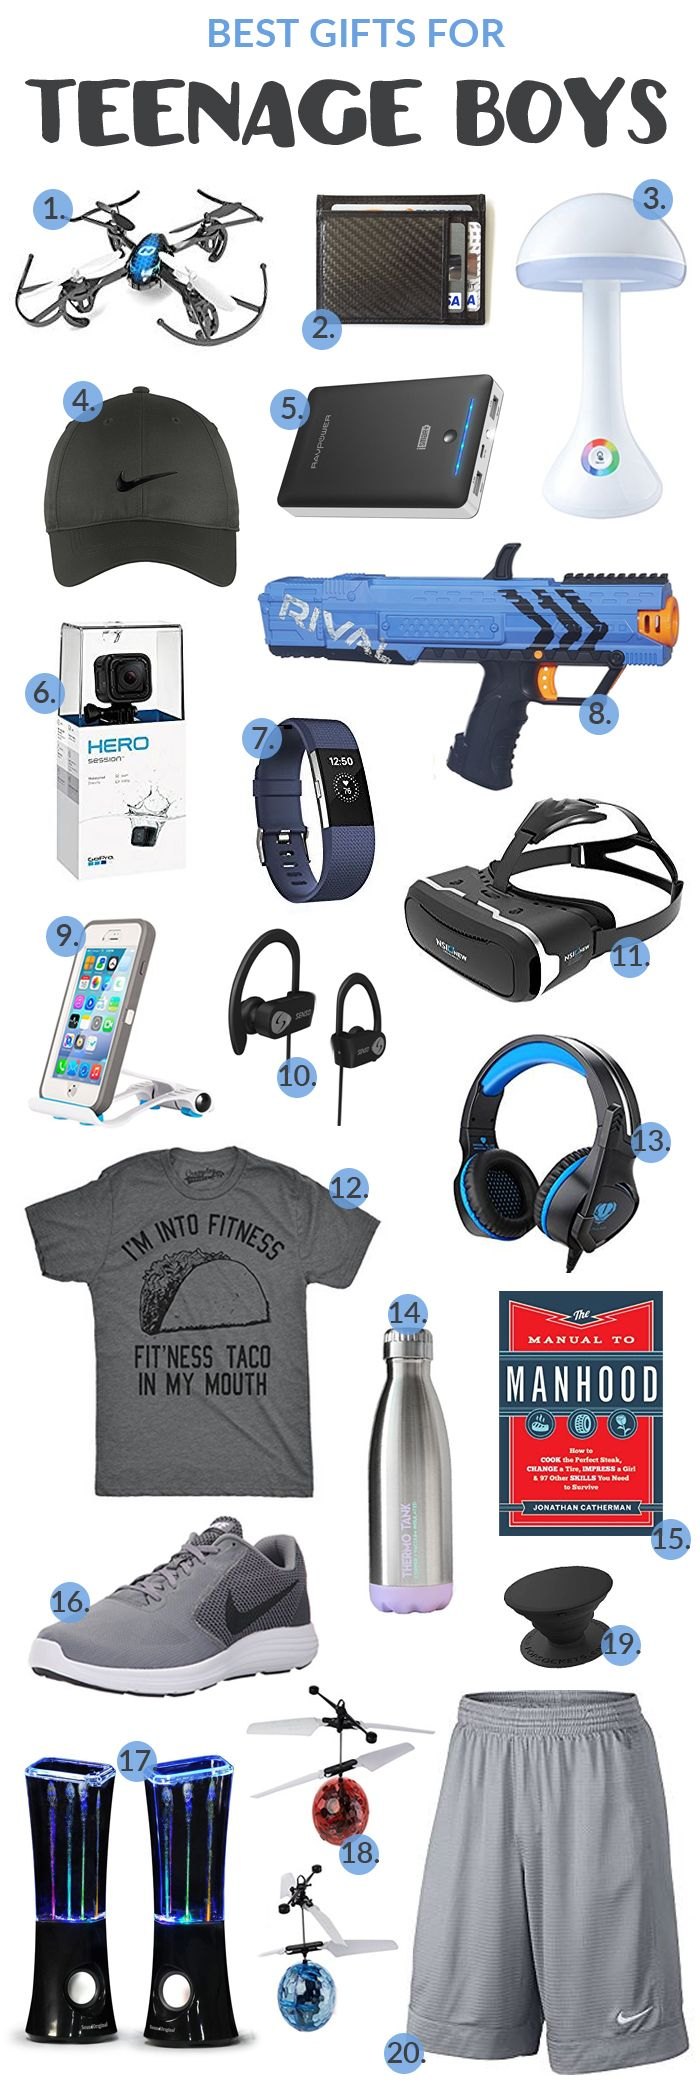 Teenage Boy Gift Guide - Need ideas for what to get a Teenage Boy for a gift for Christmas, his birthday, or any other occasion?  The best gift idea for him? We've rounded up some great Teenage Boy Gift Ideas for you here. Teenage boy gift ideas for boyfriend, son, nephew, brother, etc.  Here are some great Gift ideas for Teenage Boys